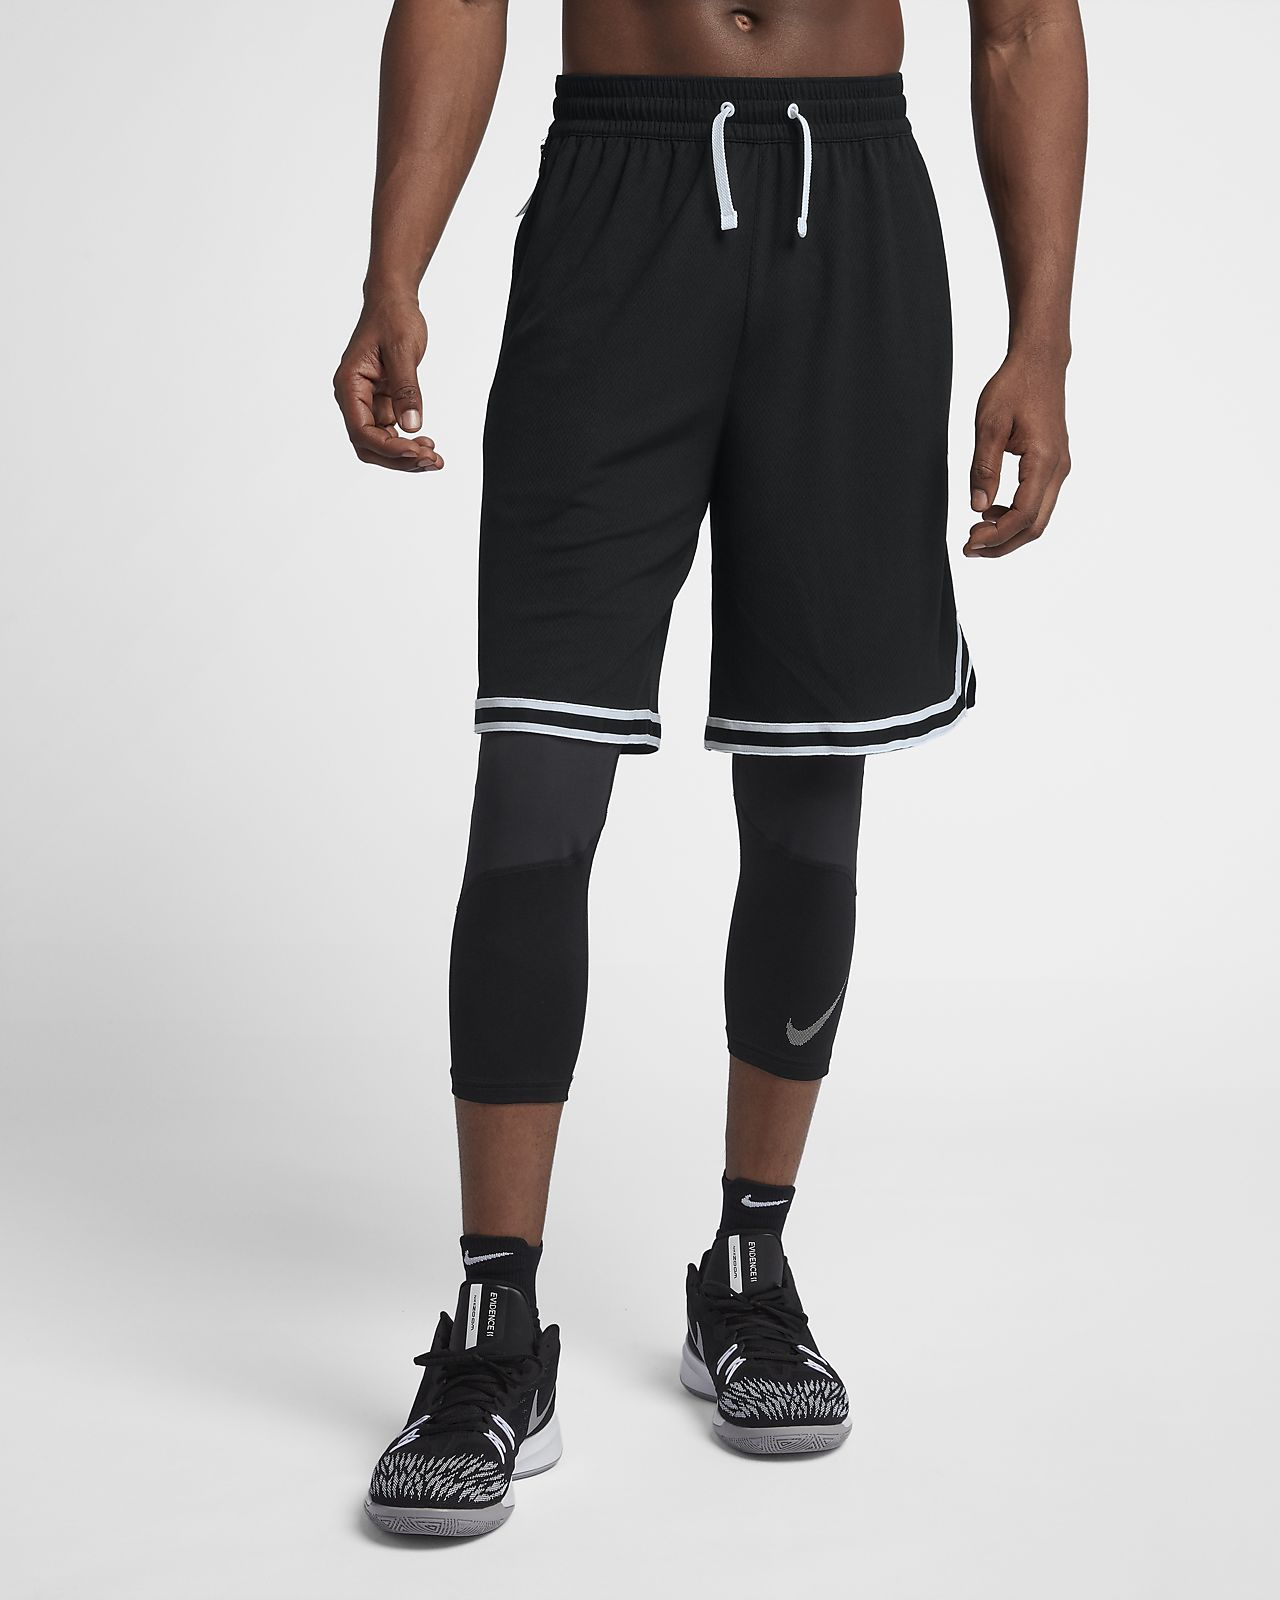 Nike Dri-FIT DNA Herren-Basketballshorts